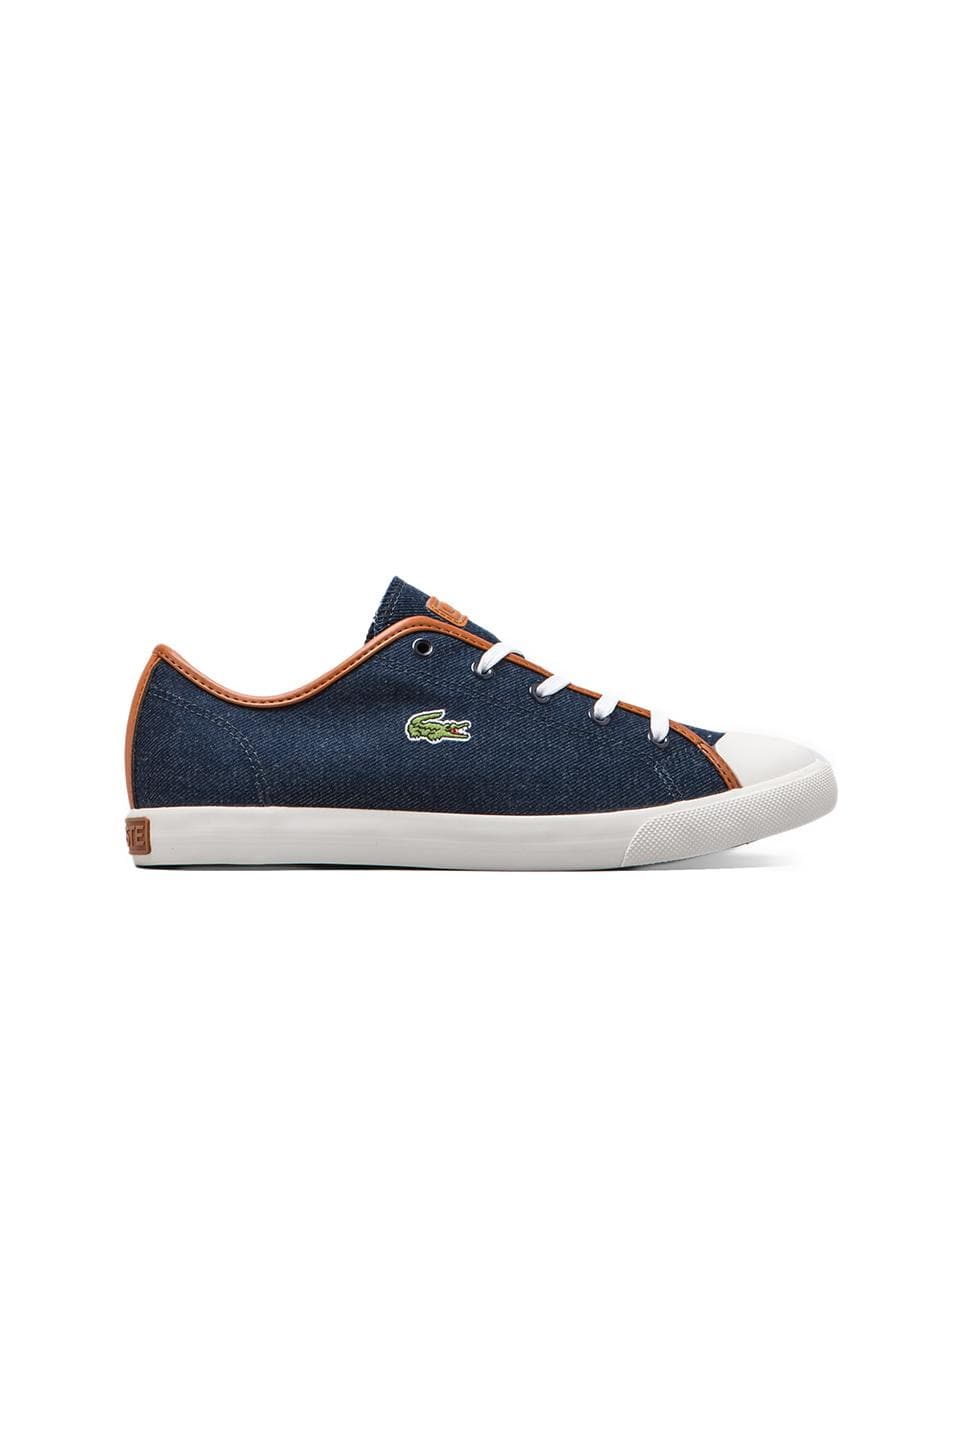 Lacoste L27 Denim in Blue/Blue